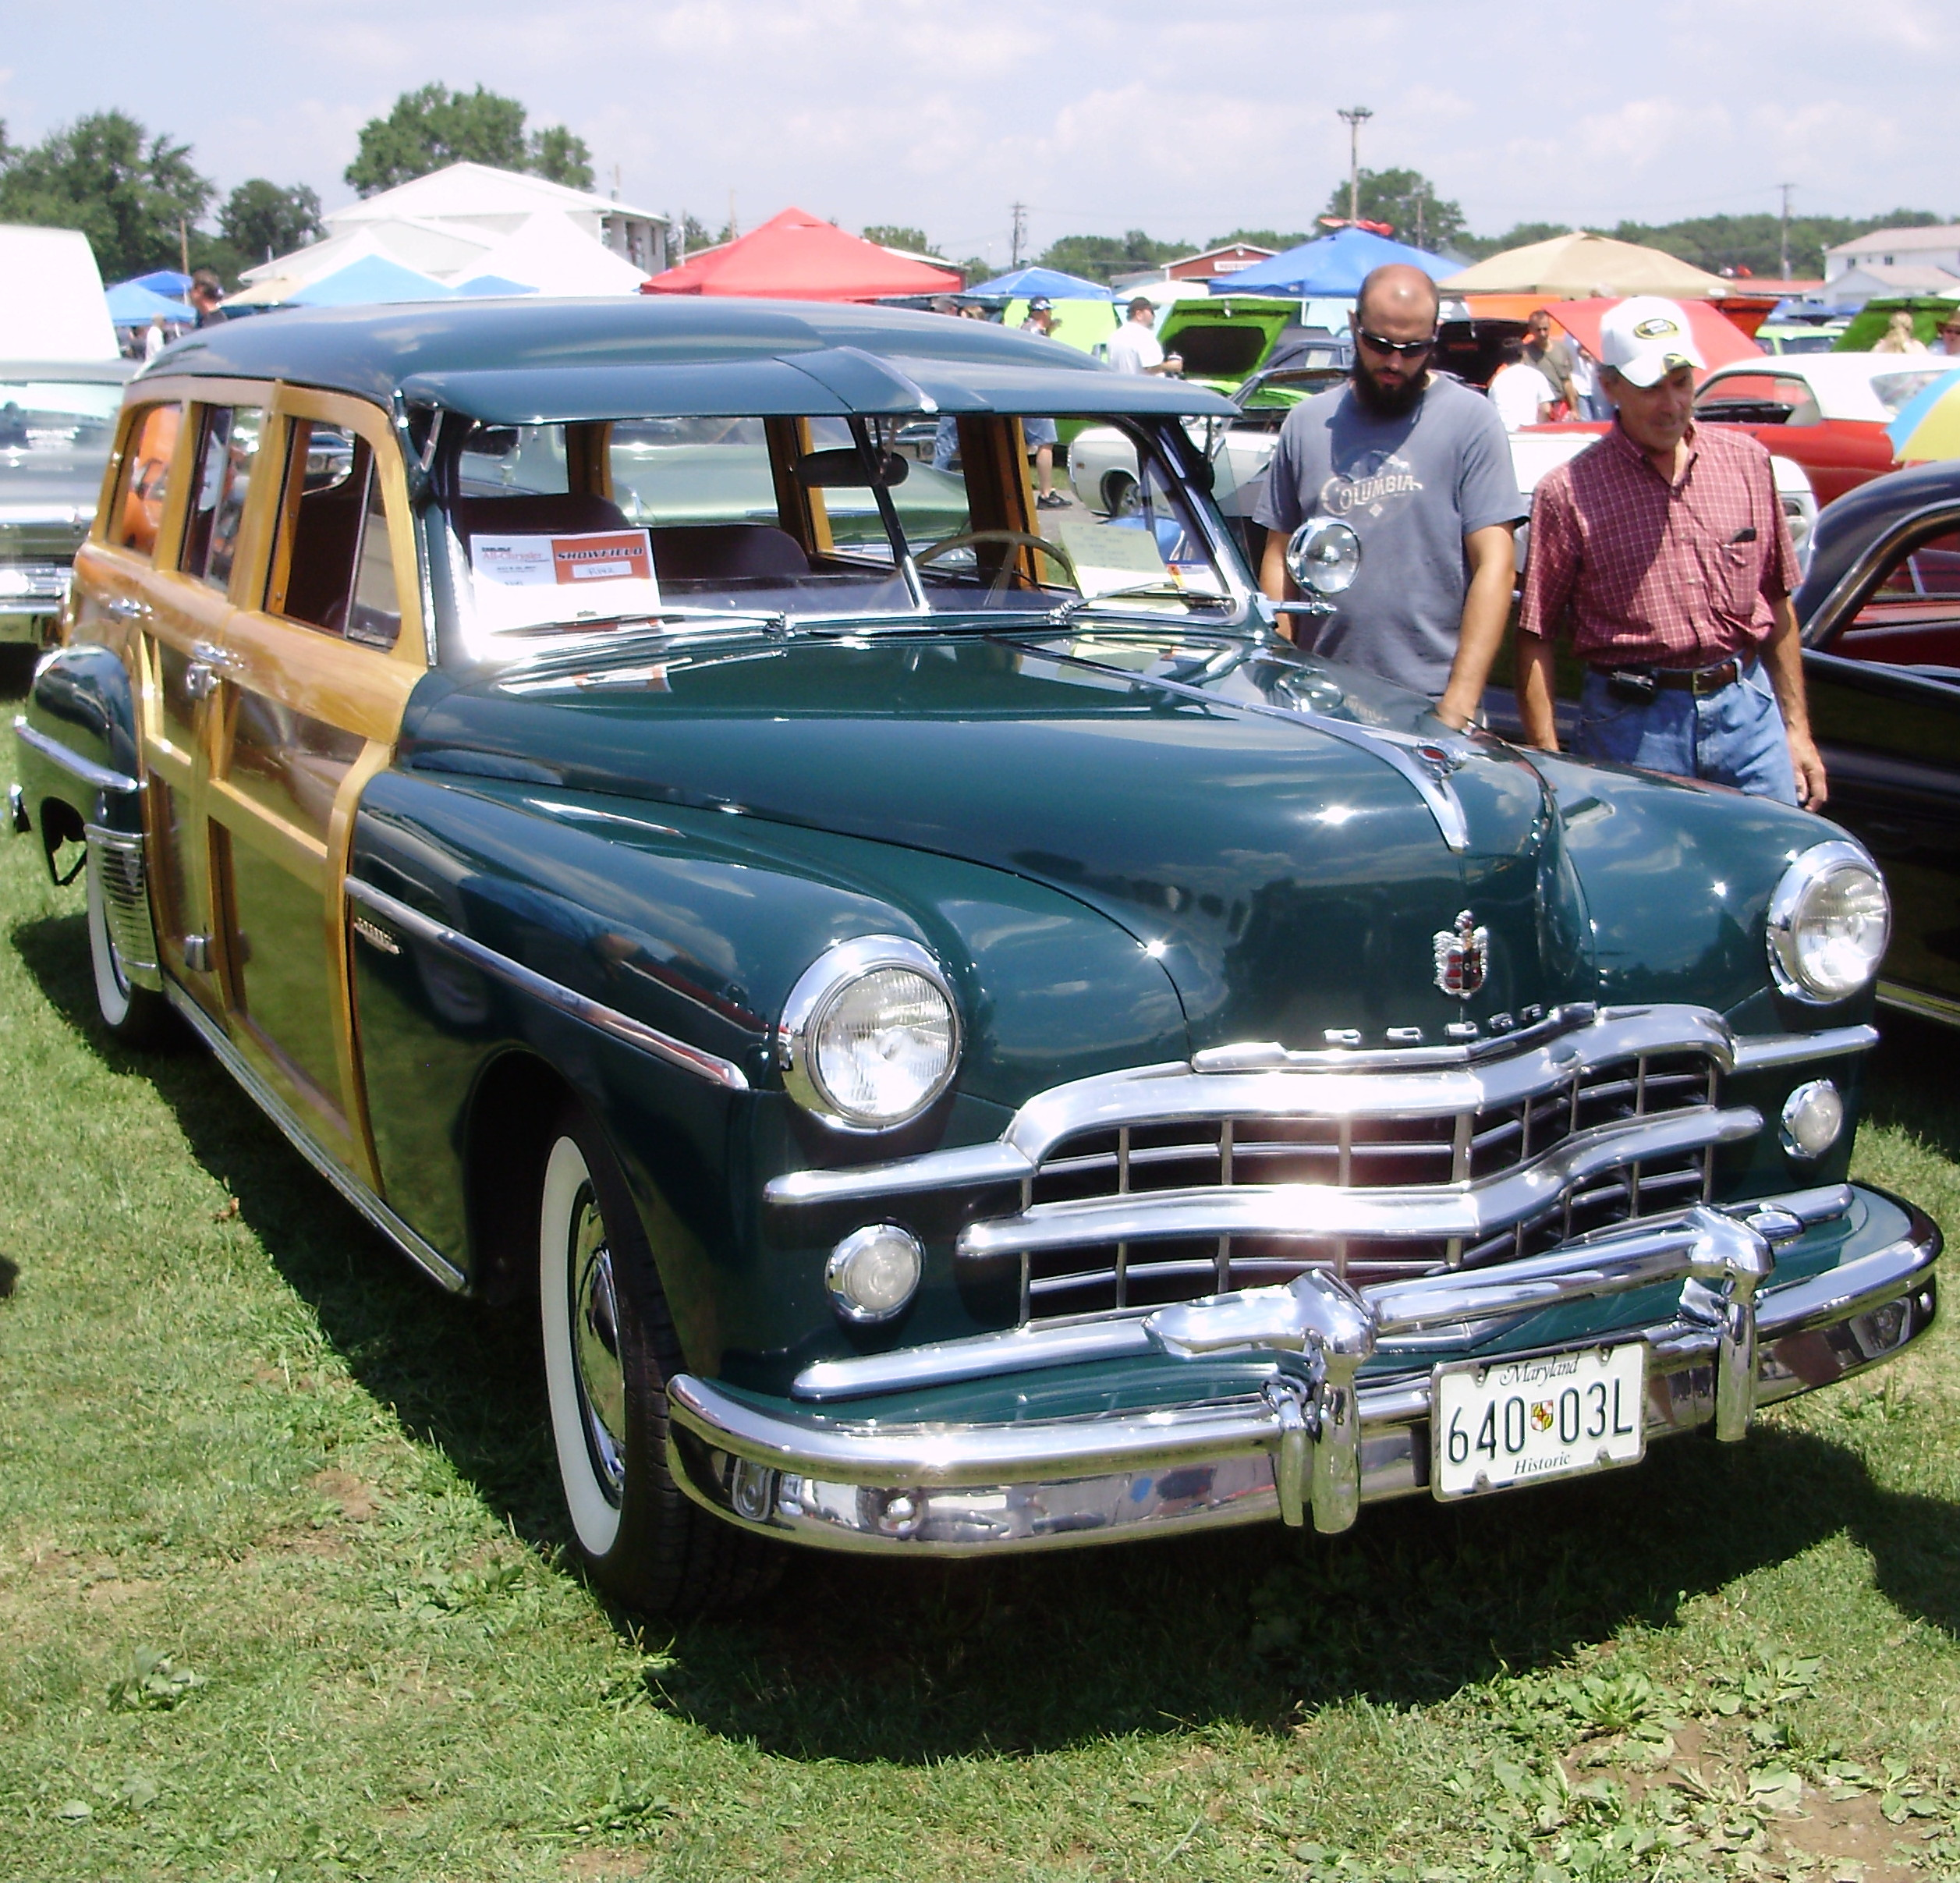 1949 Dodge Woody Station Wagon | Flickr - Photo Sharing!